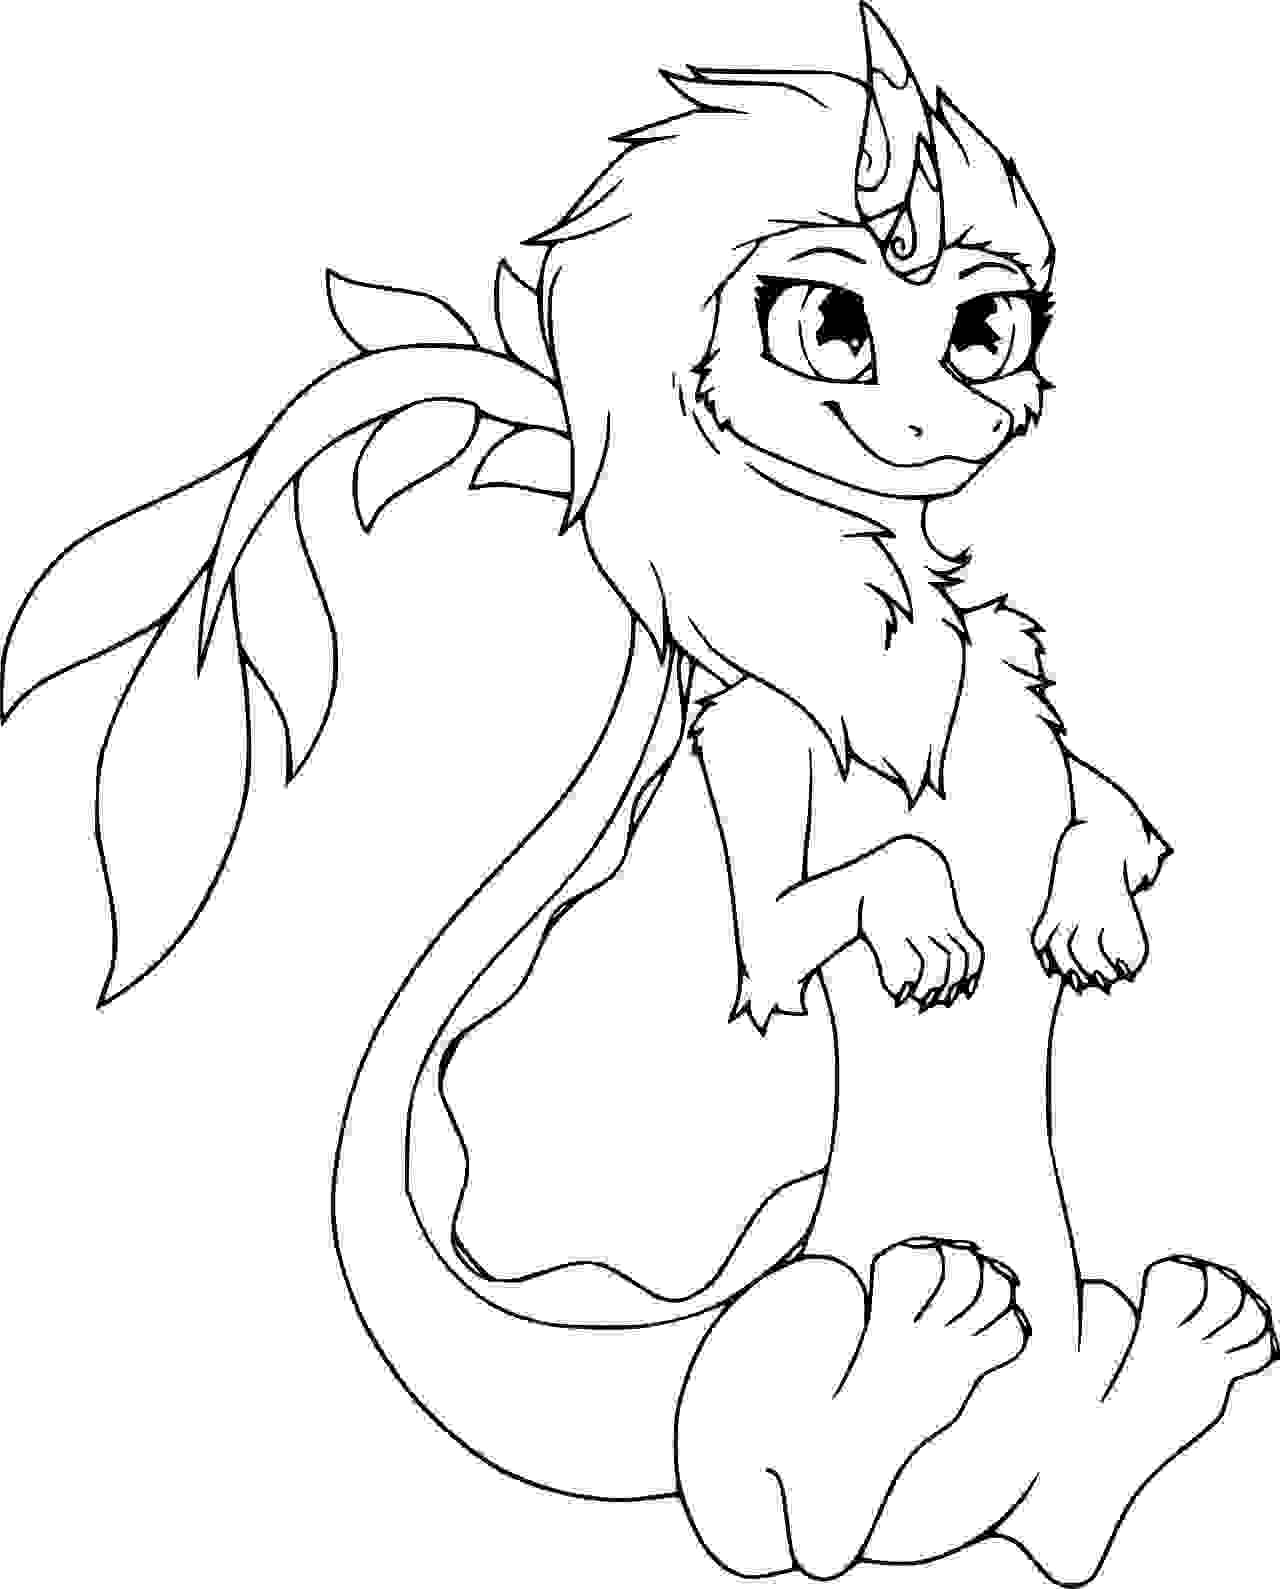 Cute Last Dragon Sisu Coloring Page